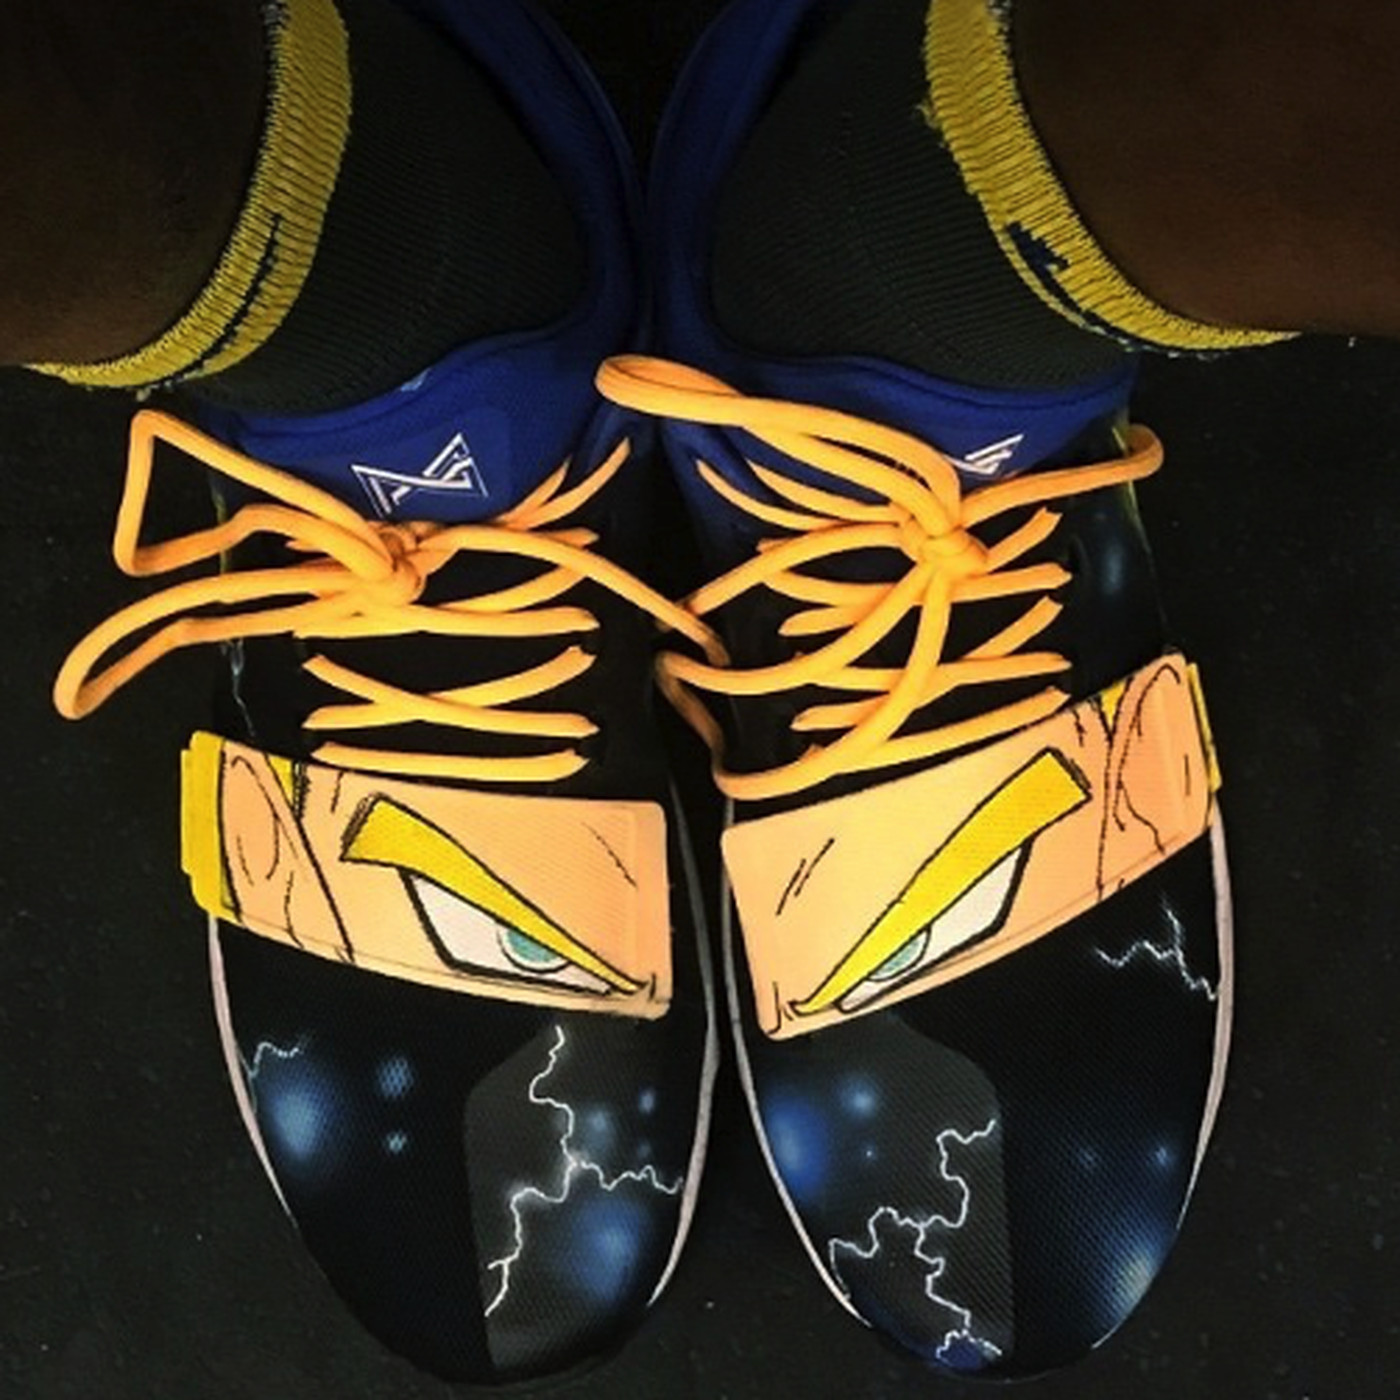 cc29cb322c8 Jordan Bell is rocking custom Dragon Ball Z Vegeta shoes - SBNation.com